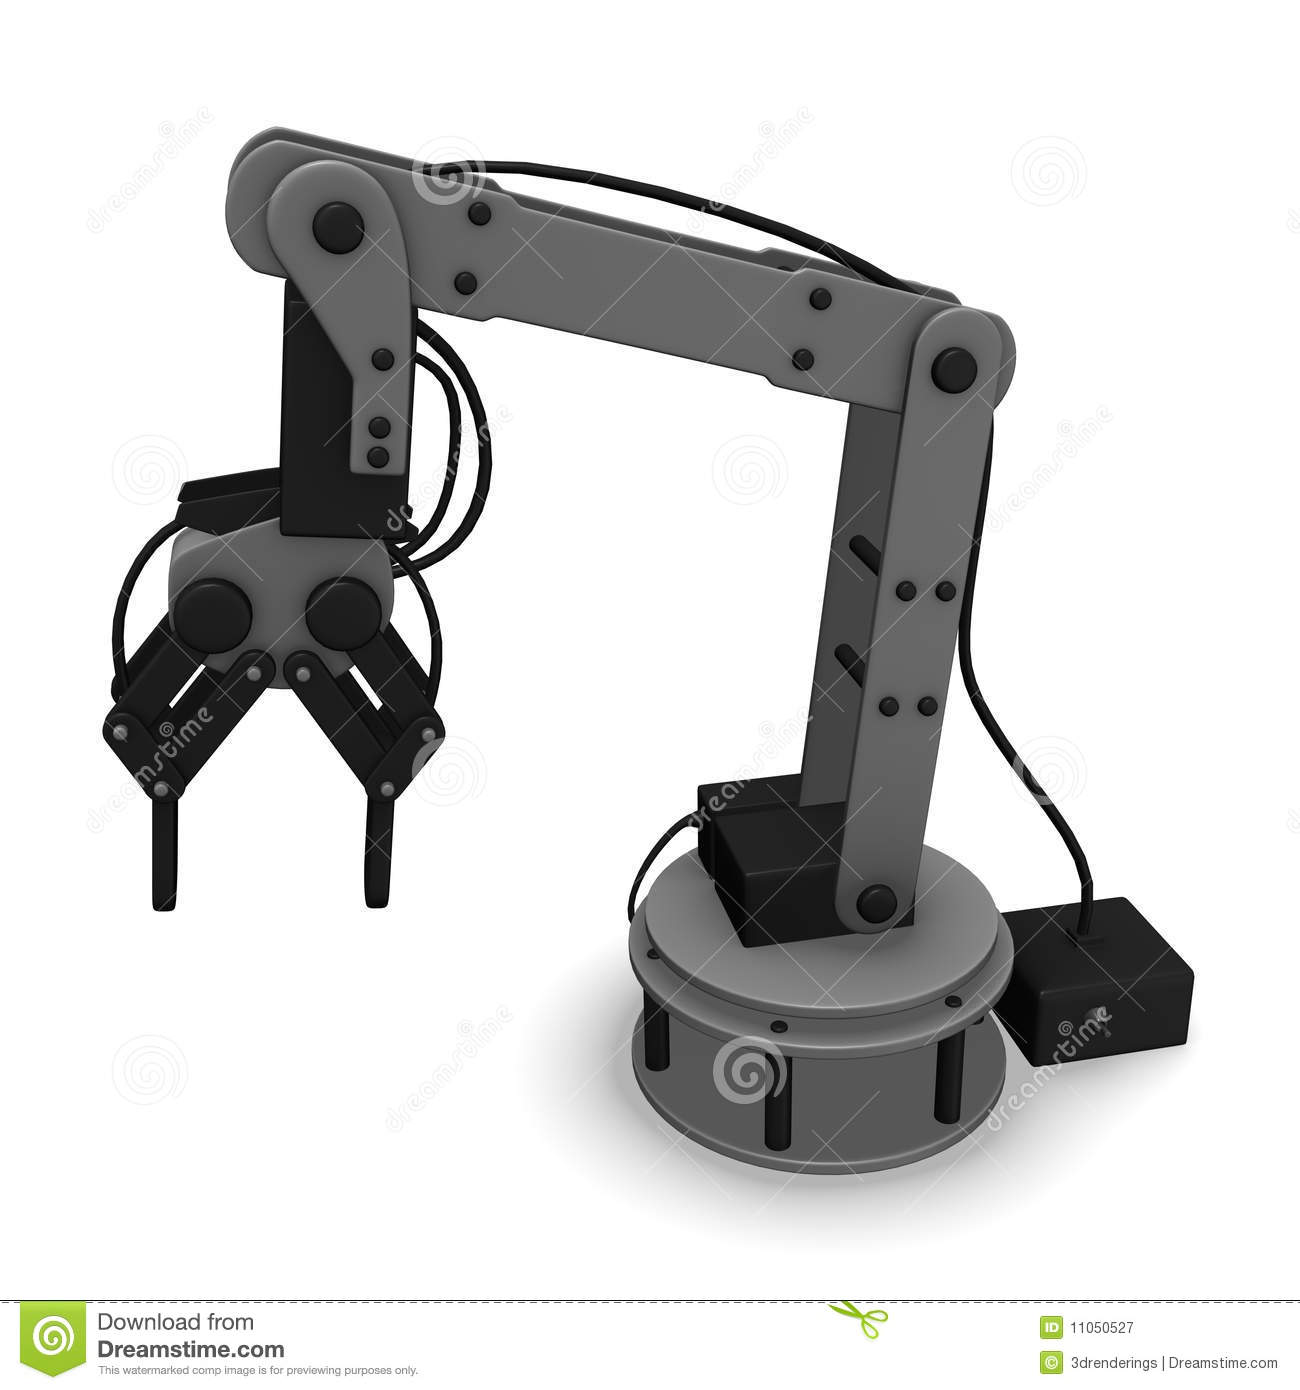 robotic arm royalty free stock photography